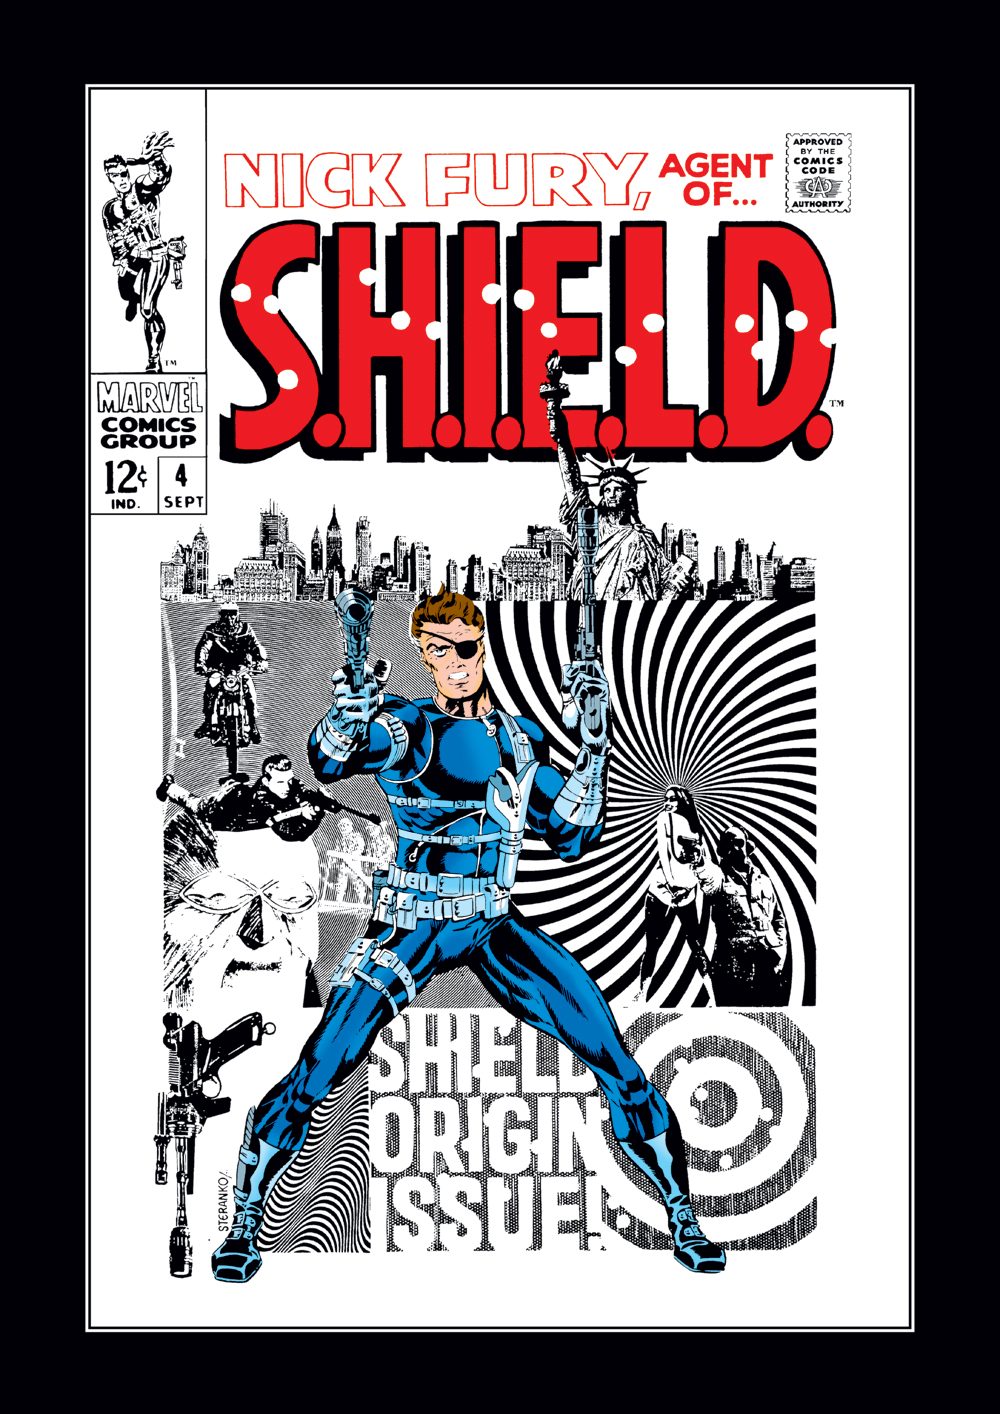 Nick Fury, Agent of S.H.I.E.L.D. (1968) #4